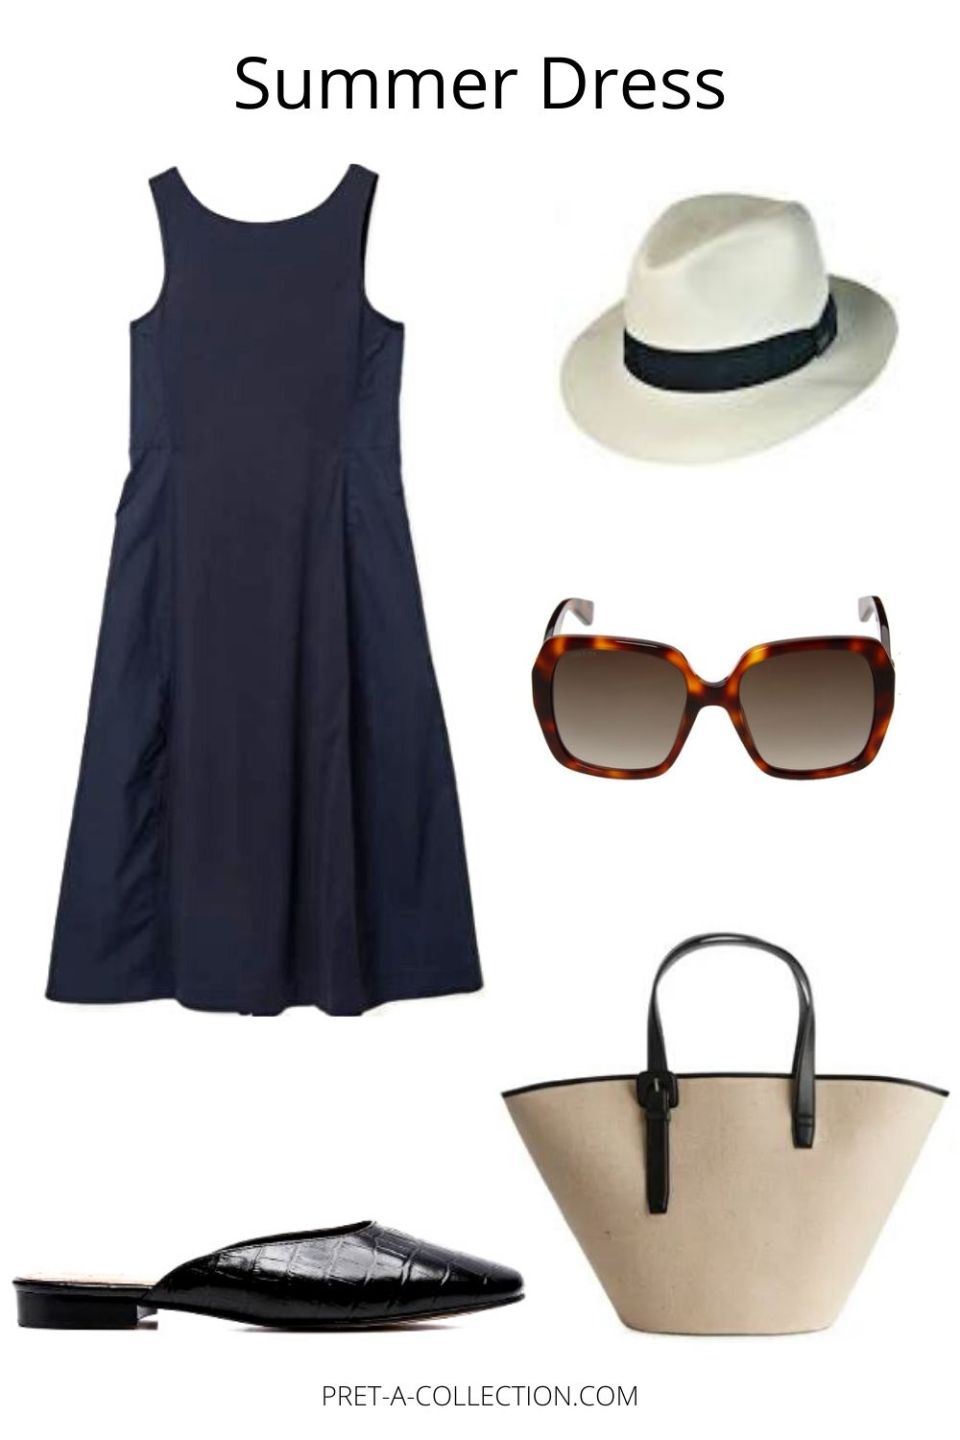 Minimalist summer dresses